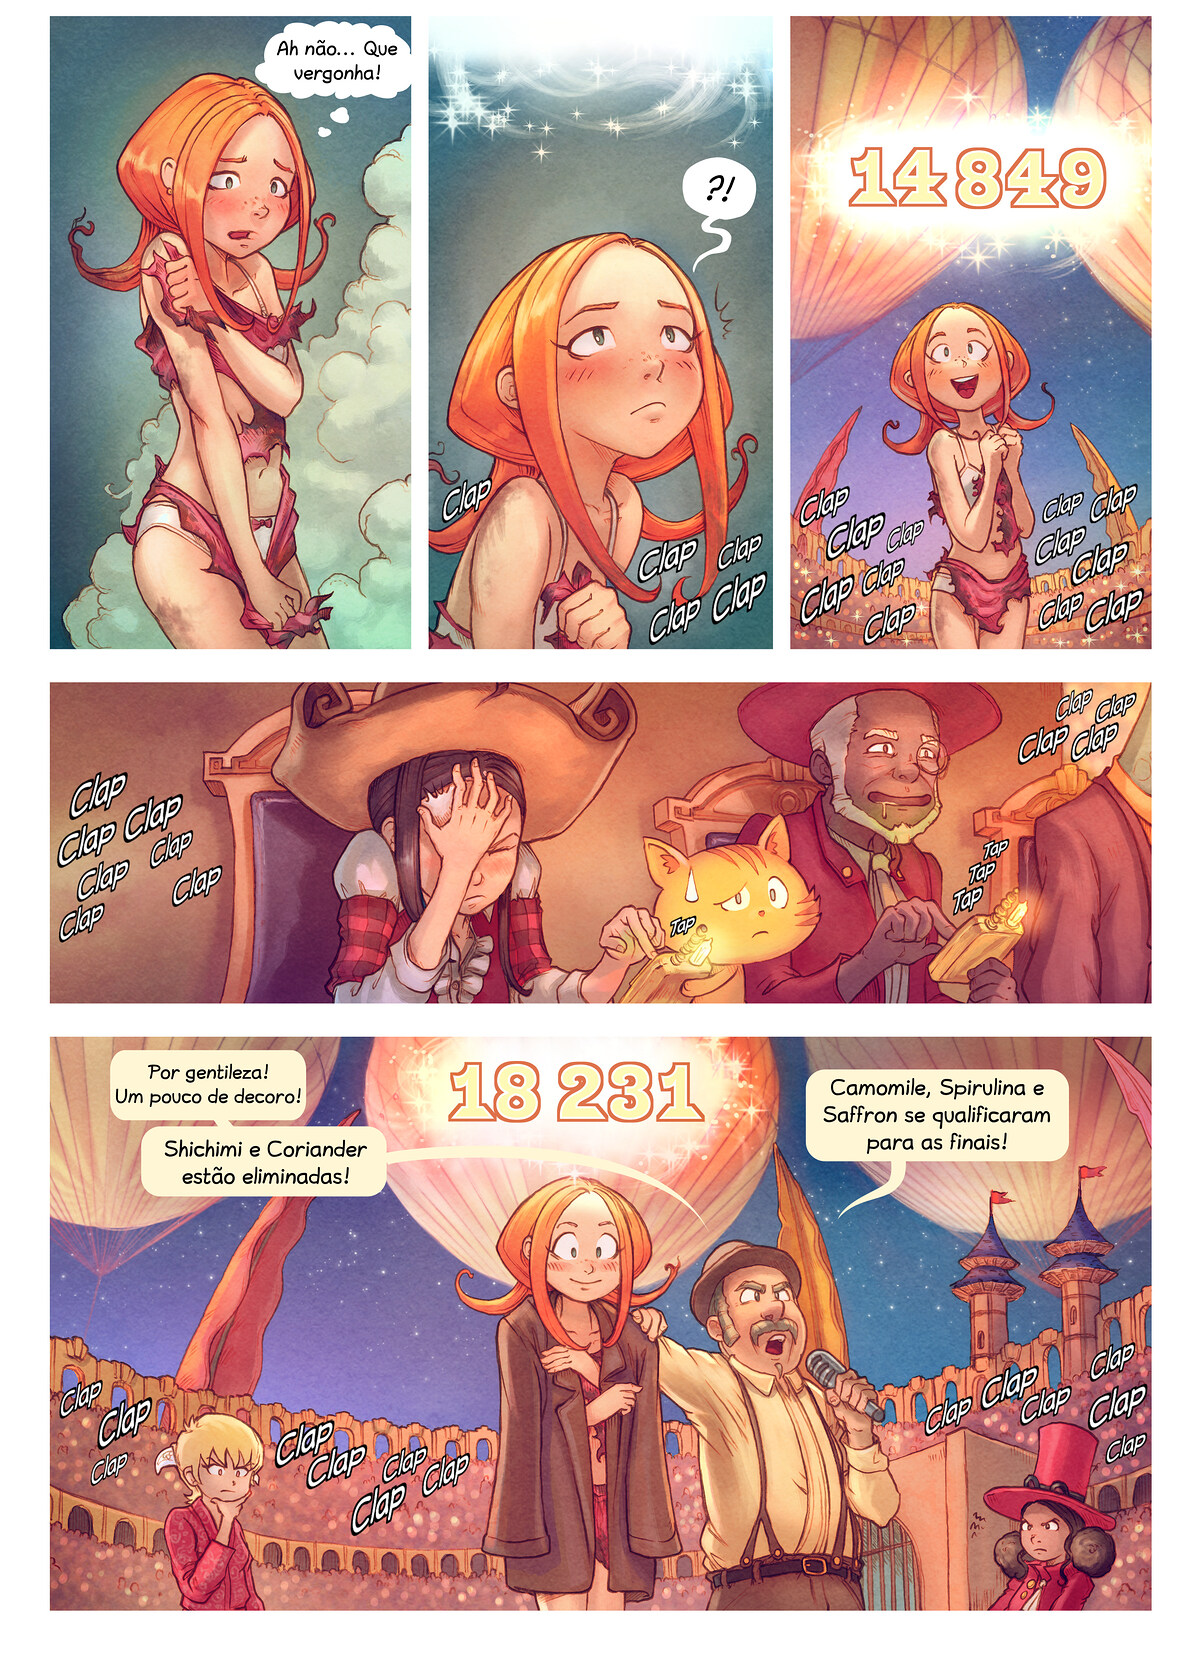 A webcomic page of Pepper&Carrot, episódio 22 [pt], página 9